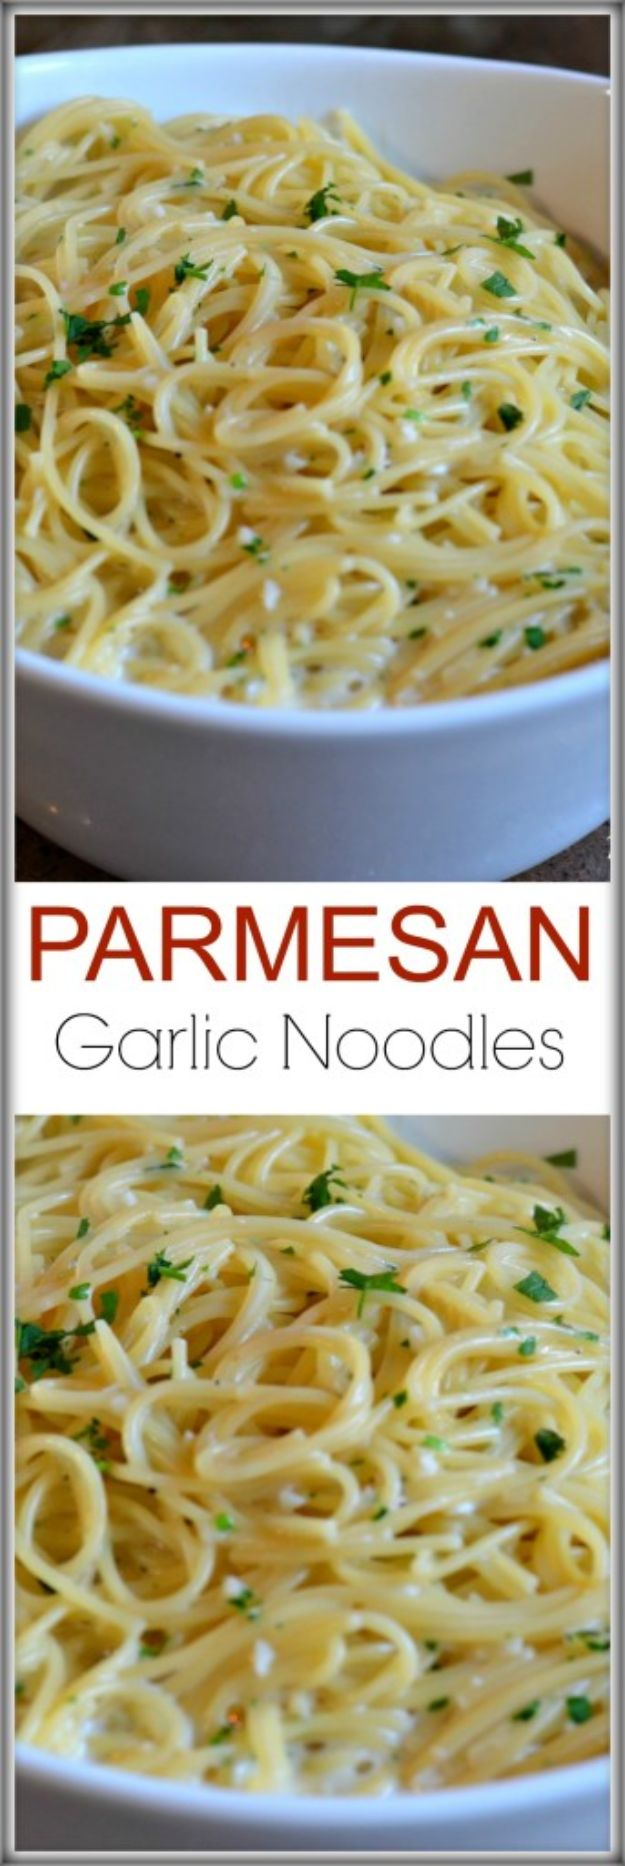 Best Recipes for the Cheese Lover - Parmesan Garlic Noodles - Easy Recipe Ideas With Cheese - Homemade Appetizers, Dips, Dinners, Snacks, Pasta Dishes, Healthy Lunches and Soups Made With Your Favorite Cheeses - Ricotta, Cheddar, Swiss, Parmesan, Goat Chevre, Mozzarella and Feta Ideas - Grilled, Healthy, Vegan and Vegetarian #cheeserecipes #recipes #recipeideas #cheese #cheeserecipe http://diyjoy.com/best-recipes-cheese-lover